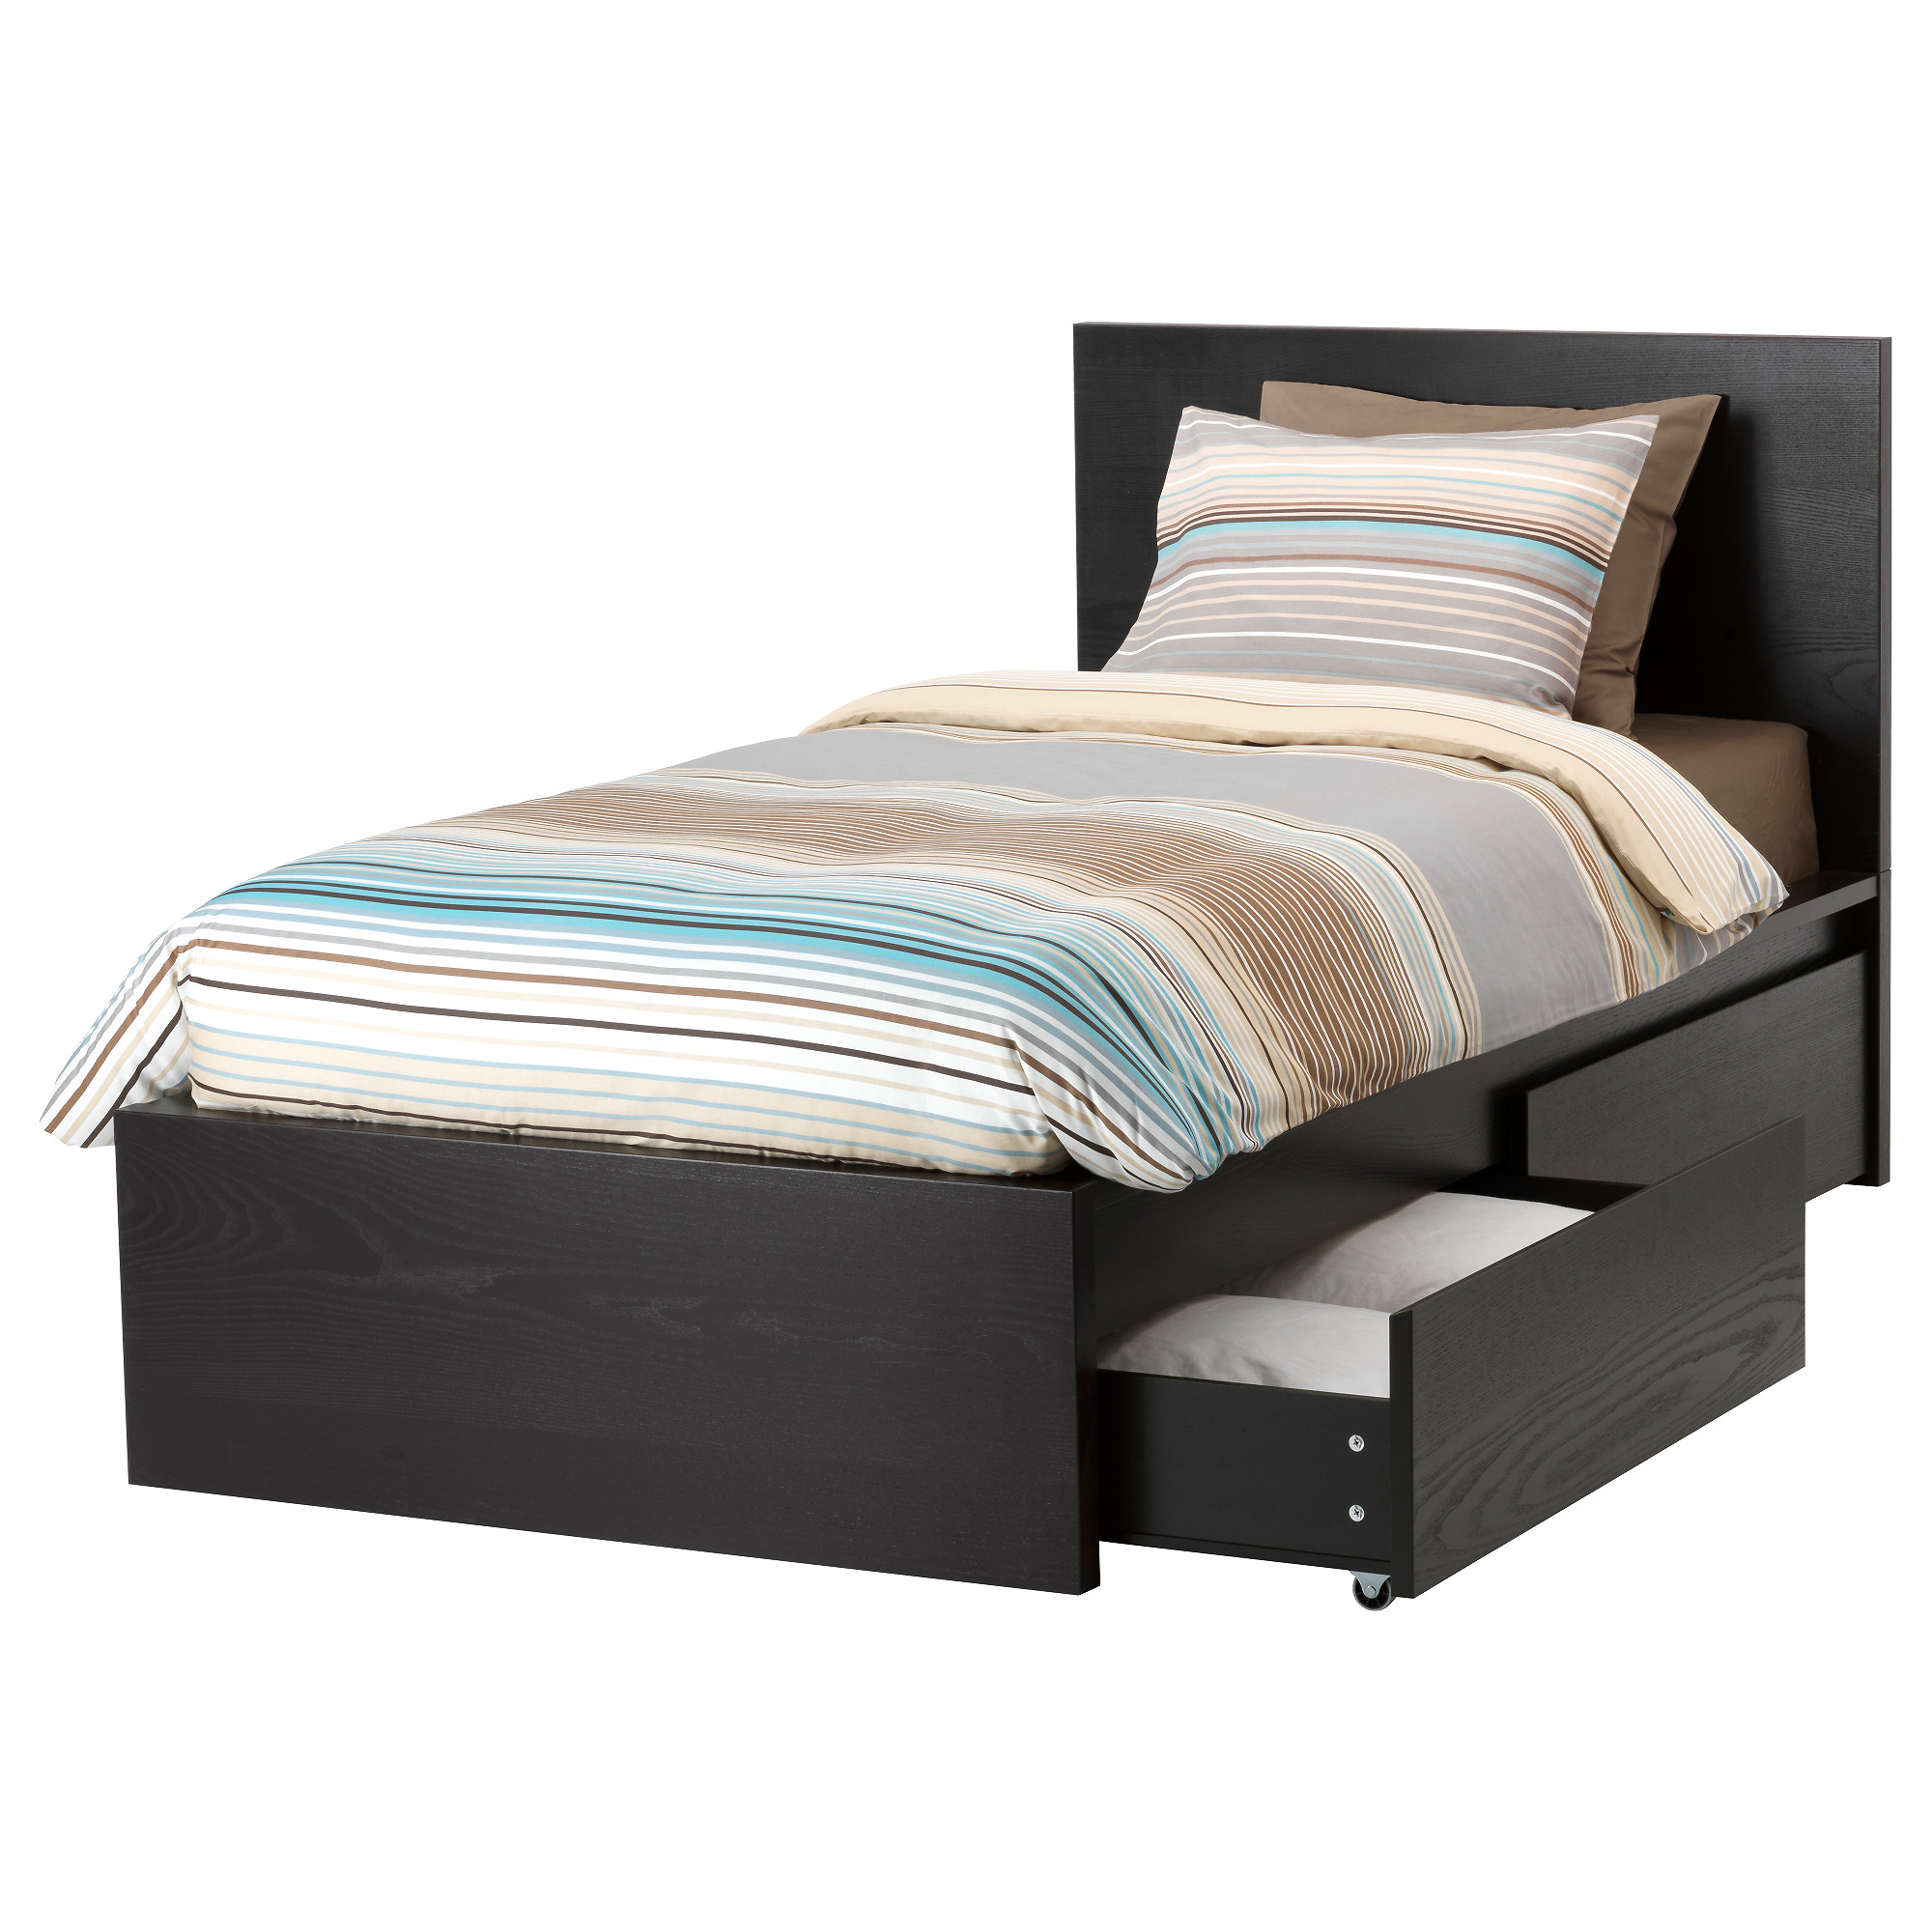 Bed Frames With Storage malm high bed frame/2 storage boxes - - - ikea